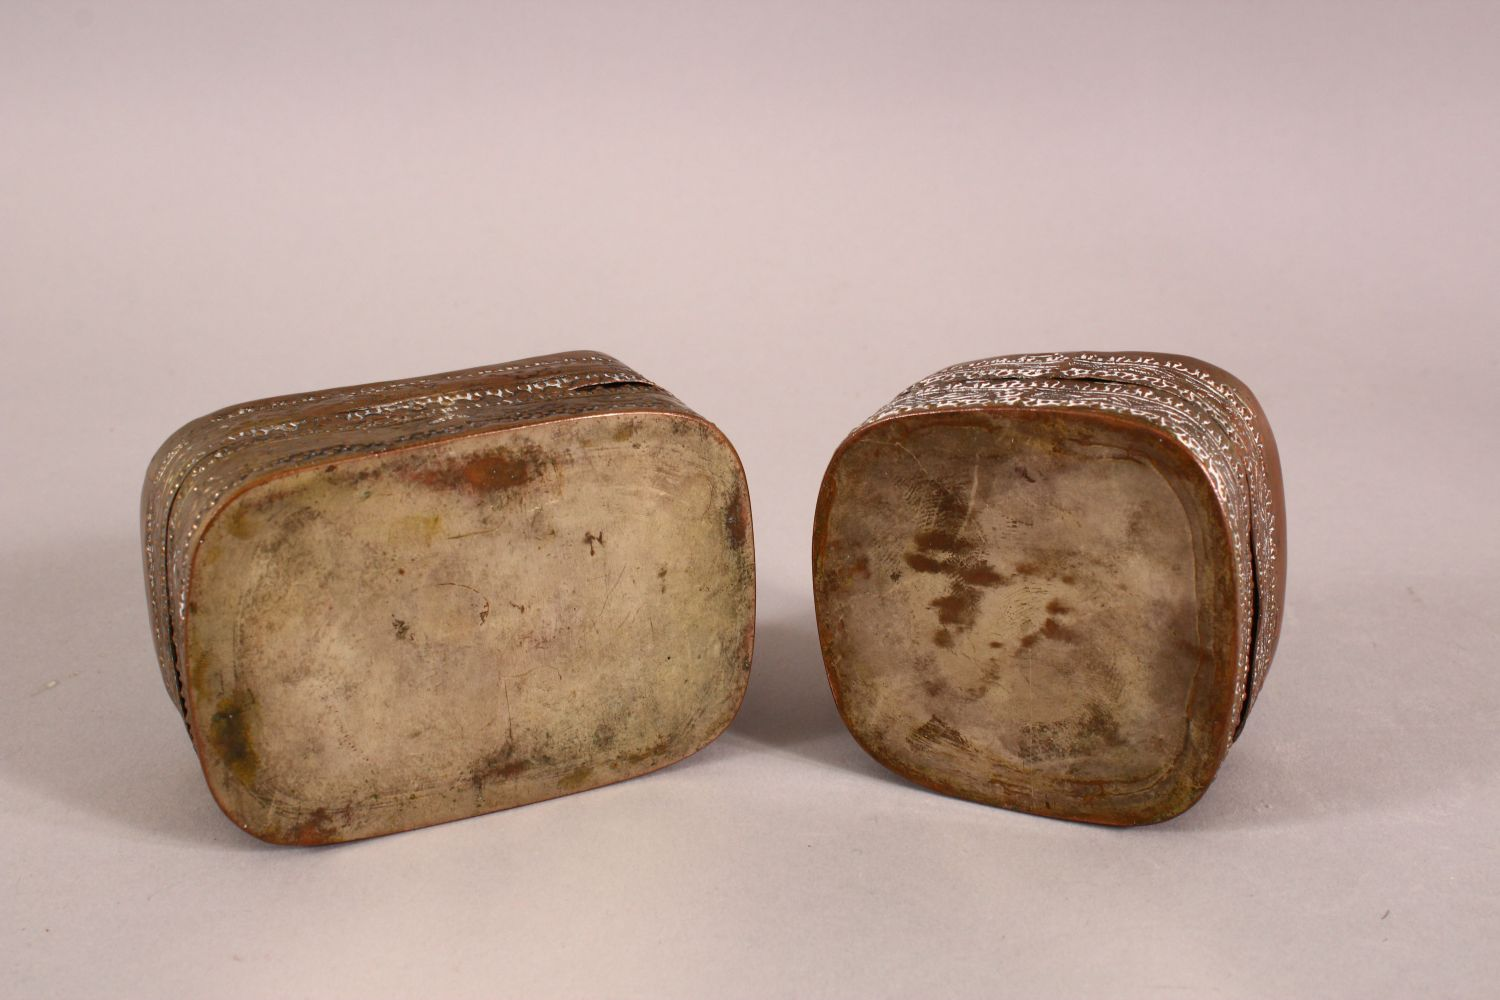 TWO 19TH CENTURY CHINESE BLUE AND WHITE PORCELAIN AND METAL POWDER BOXES, the metal mounts - Image 3 of 3